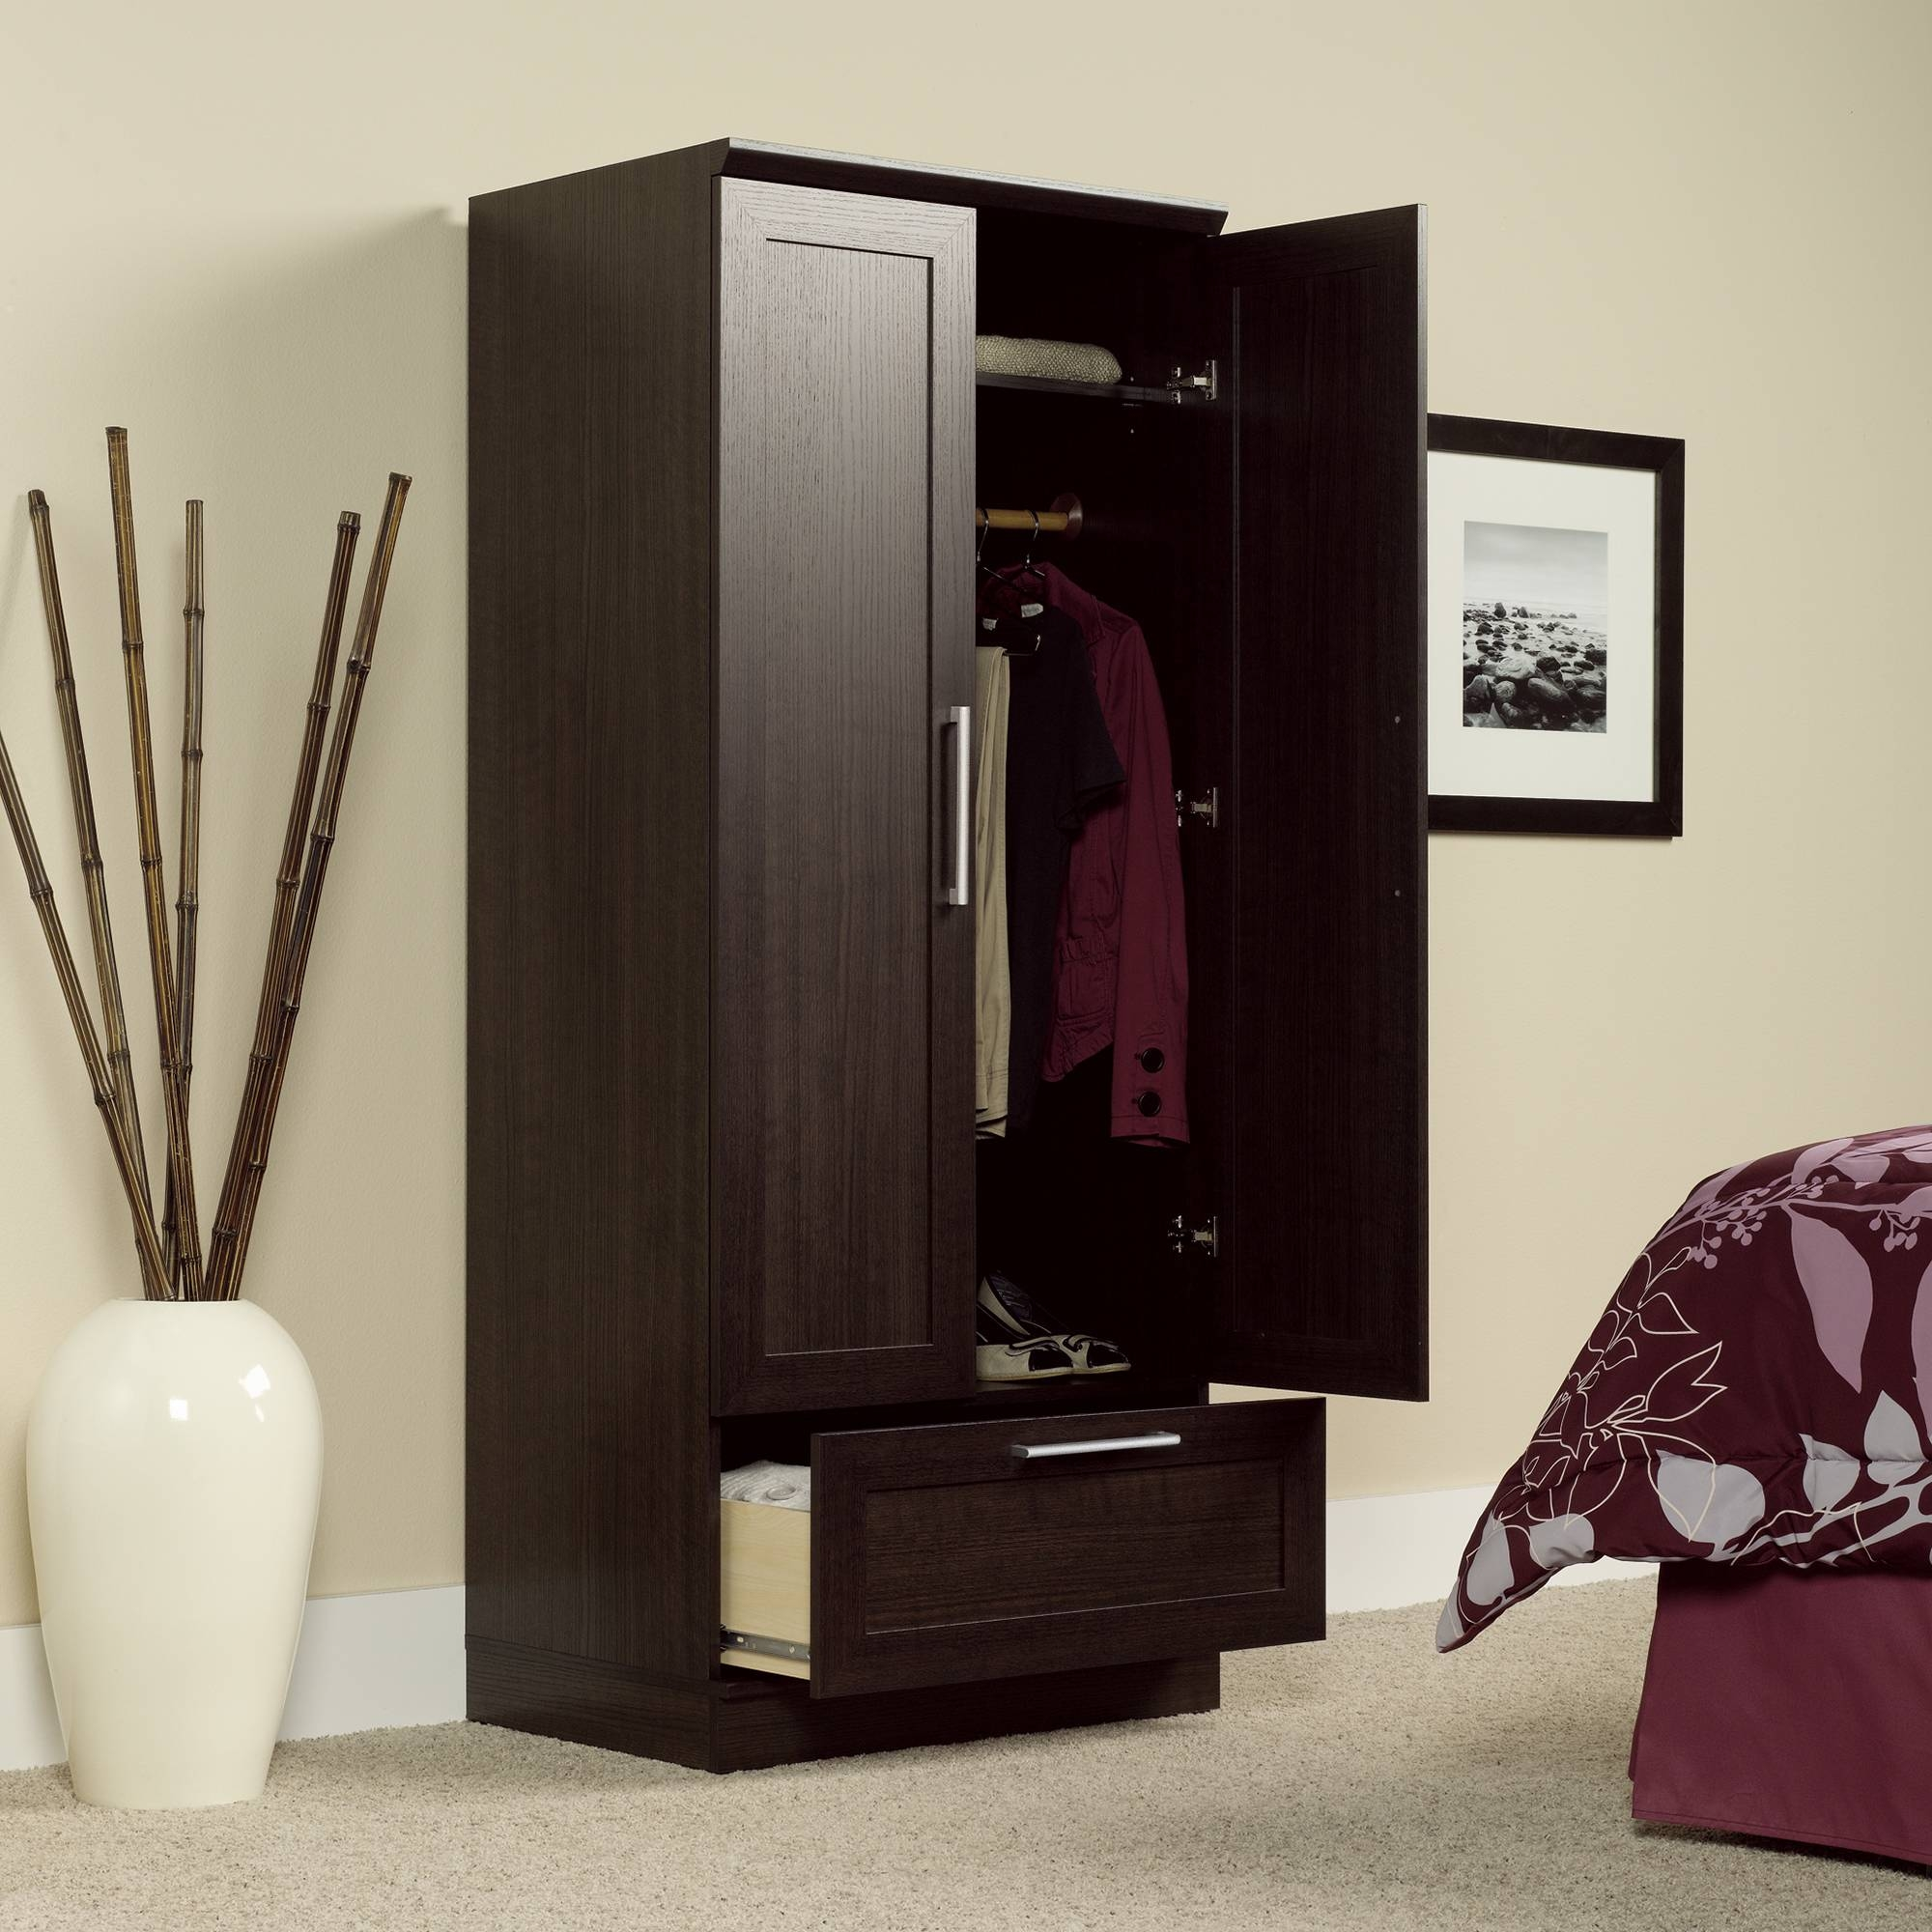 Homeplus | Wardrobe Storage Cabinet | 411312 | Sauder inside Dark Wood Wardrobe Cheap (Image 15 of 30)